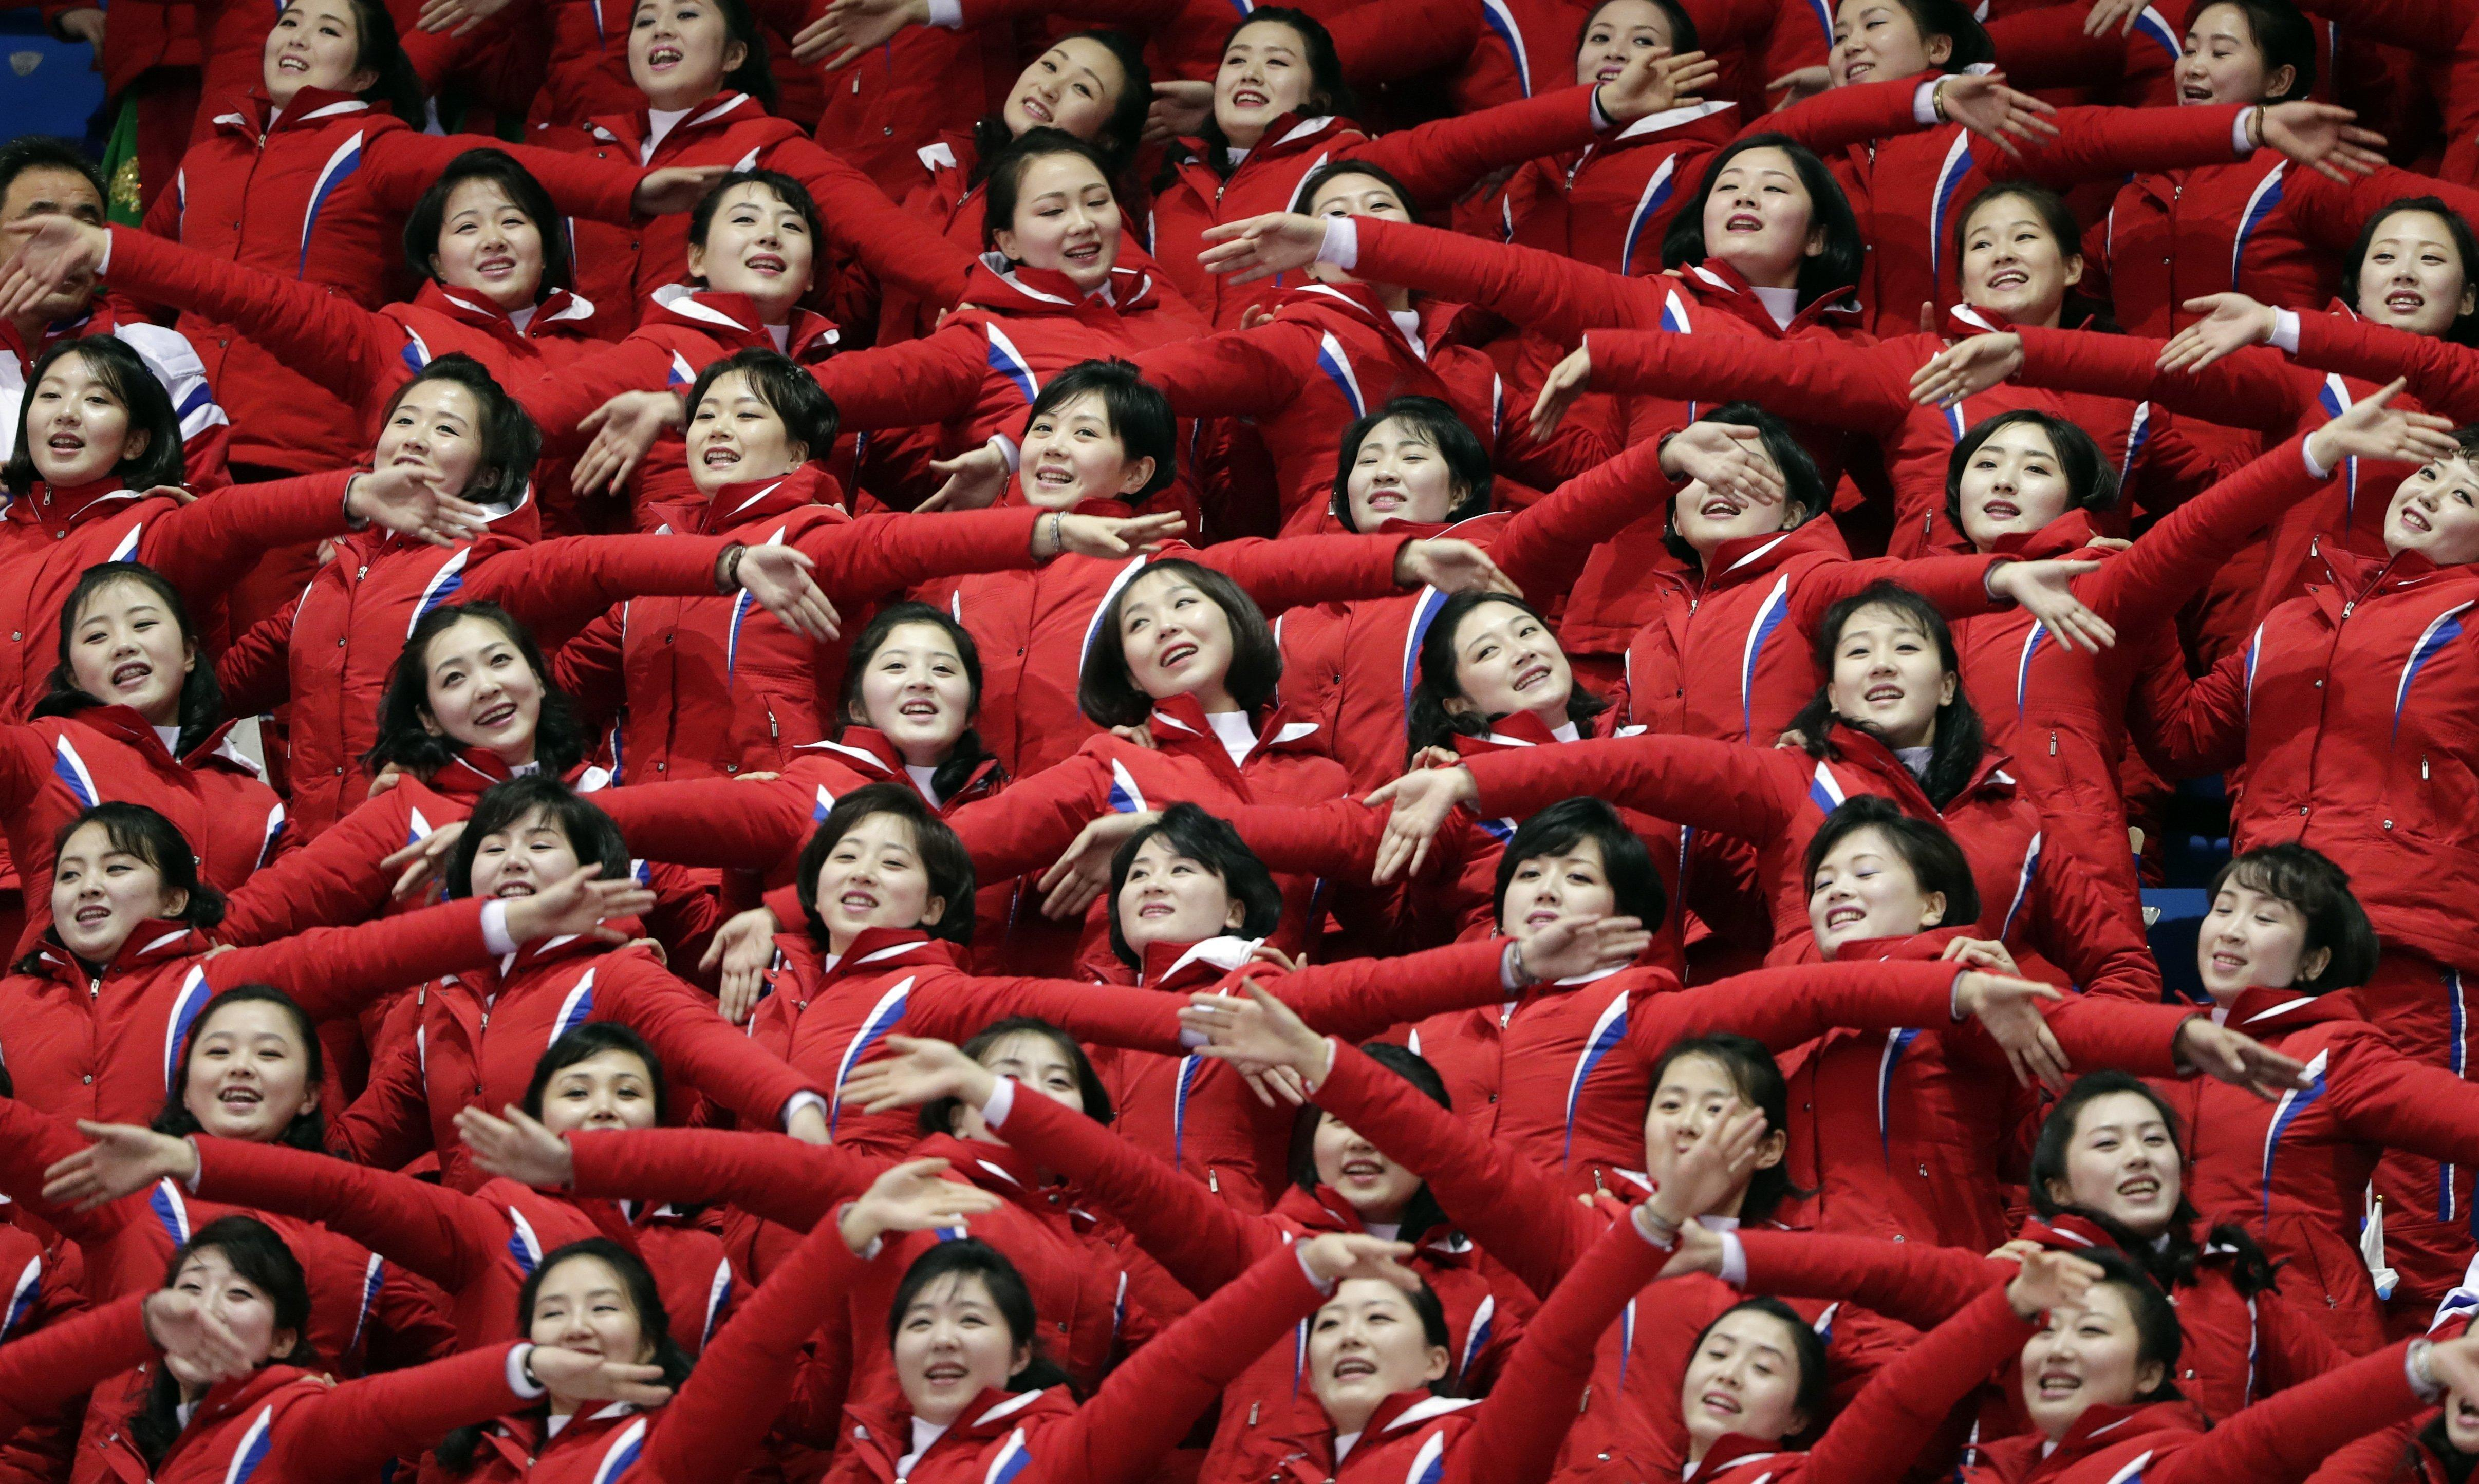 Supporters cheer on their country at the 2018 Winter Olympics